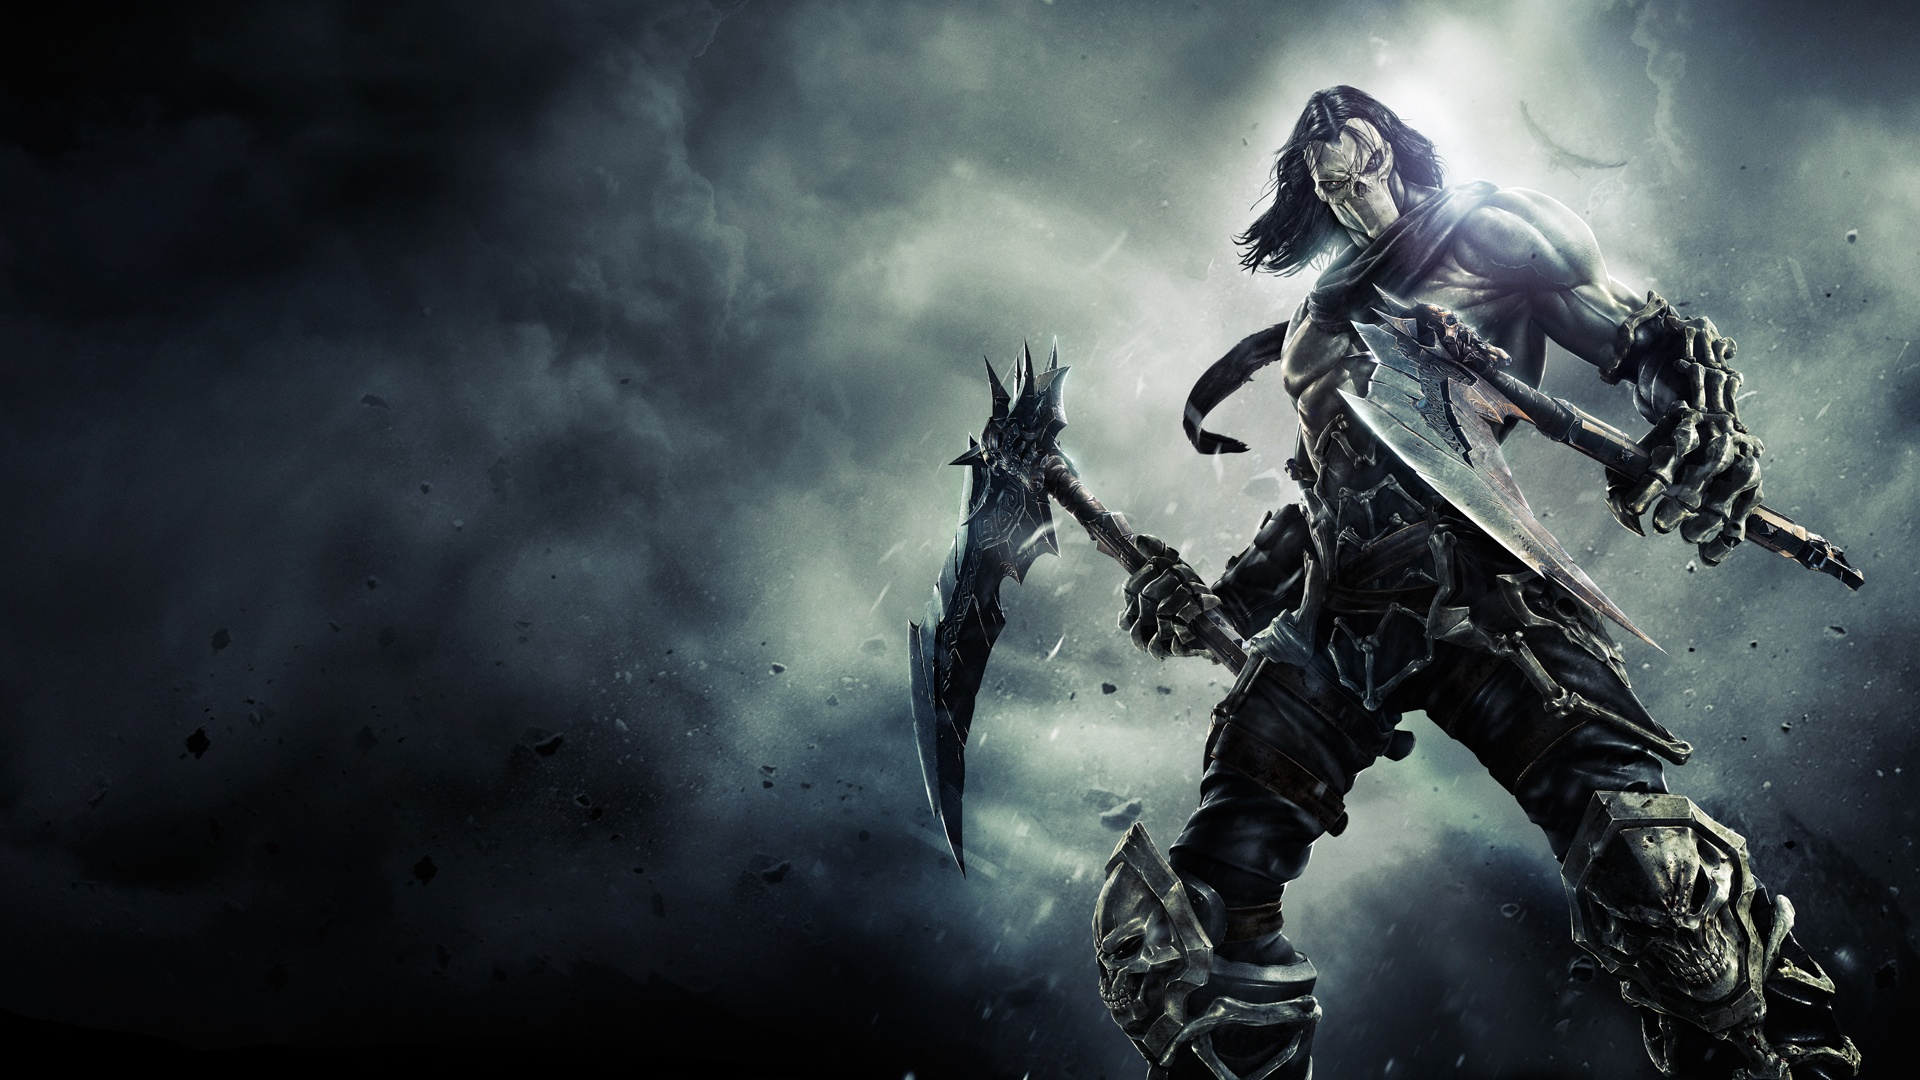 Darksiders 2 wallpaper   844289 1920x1080